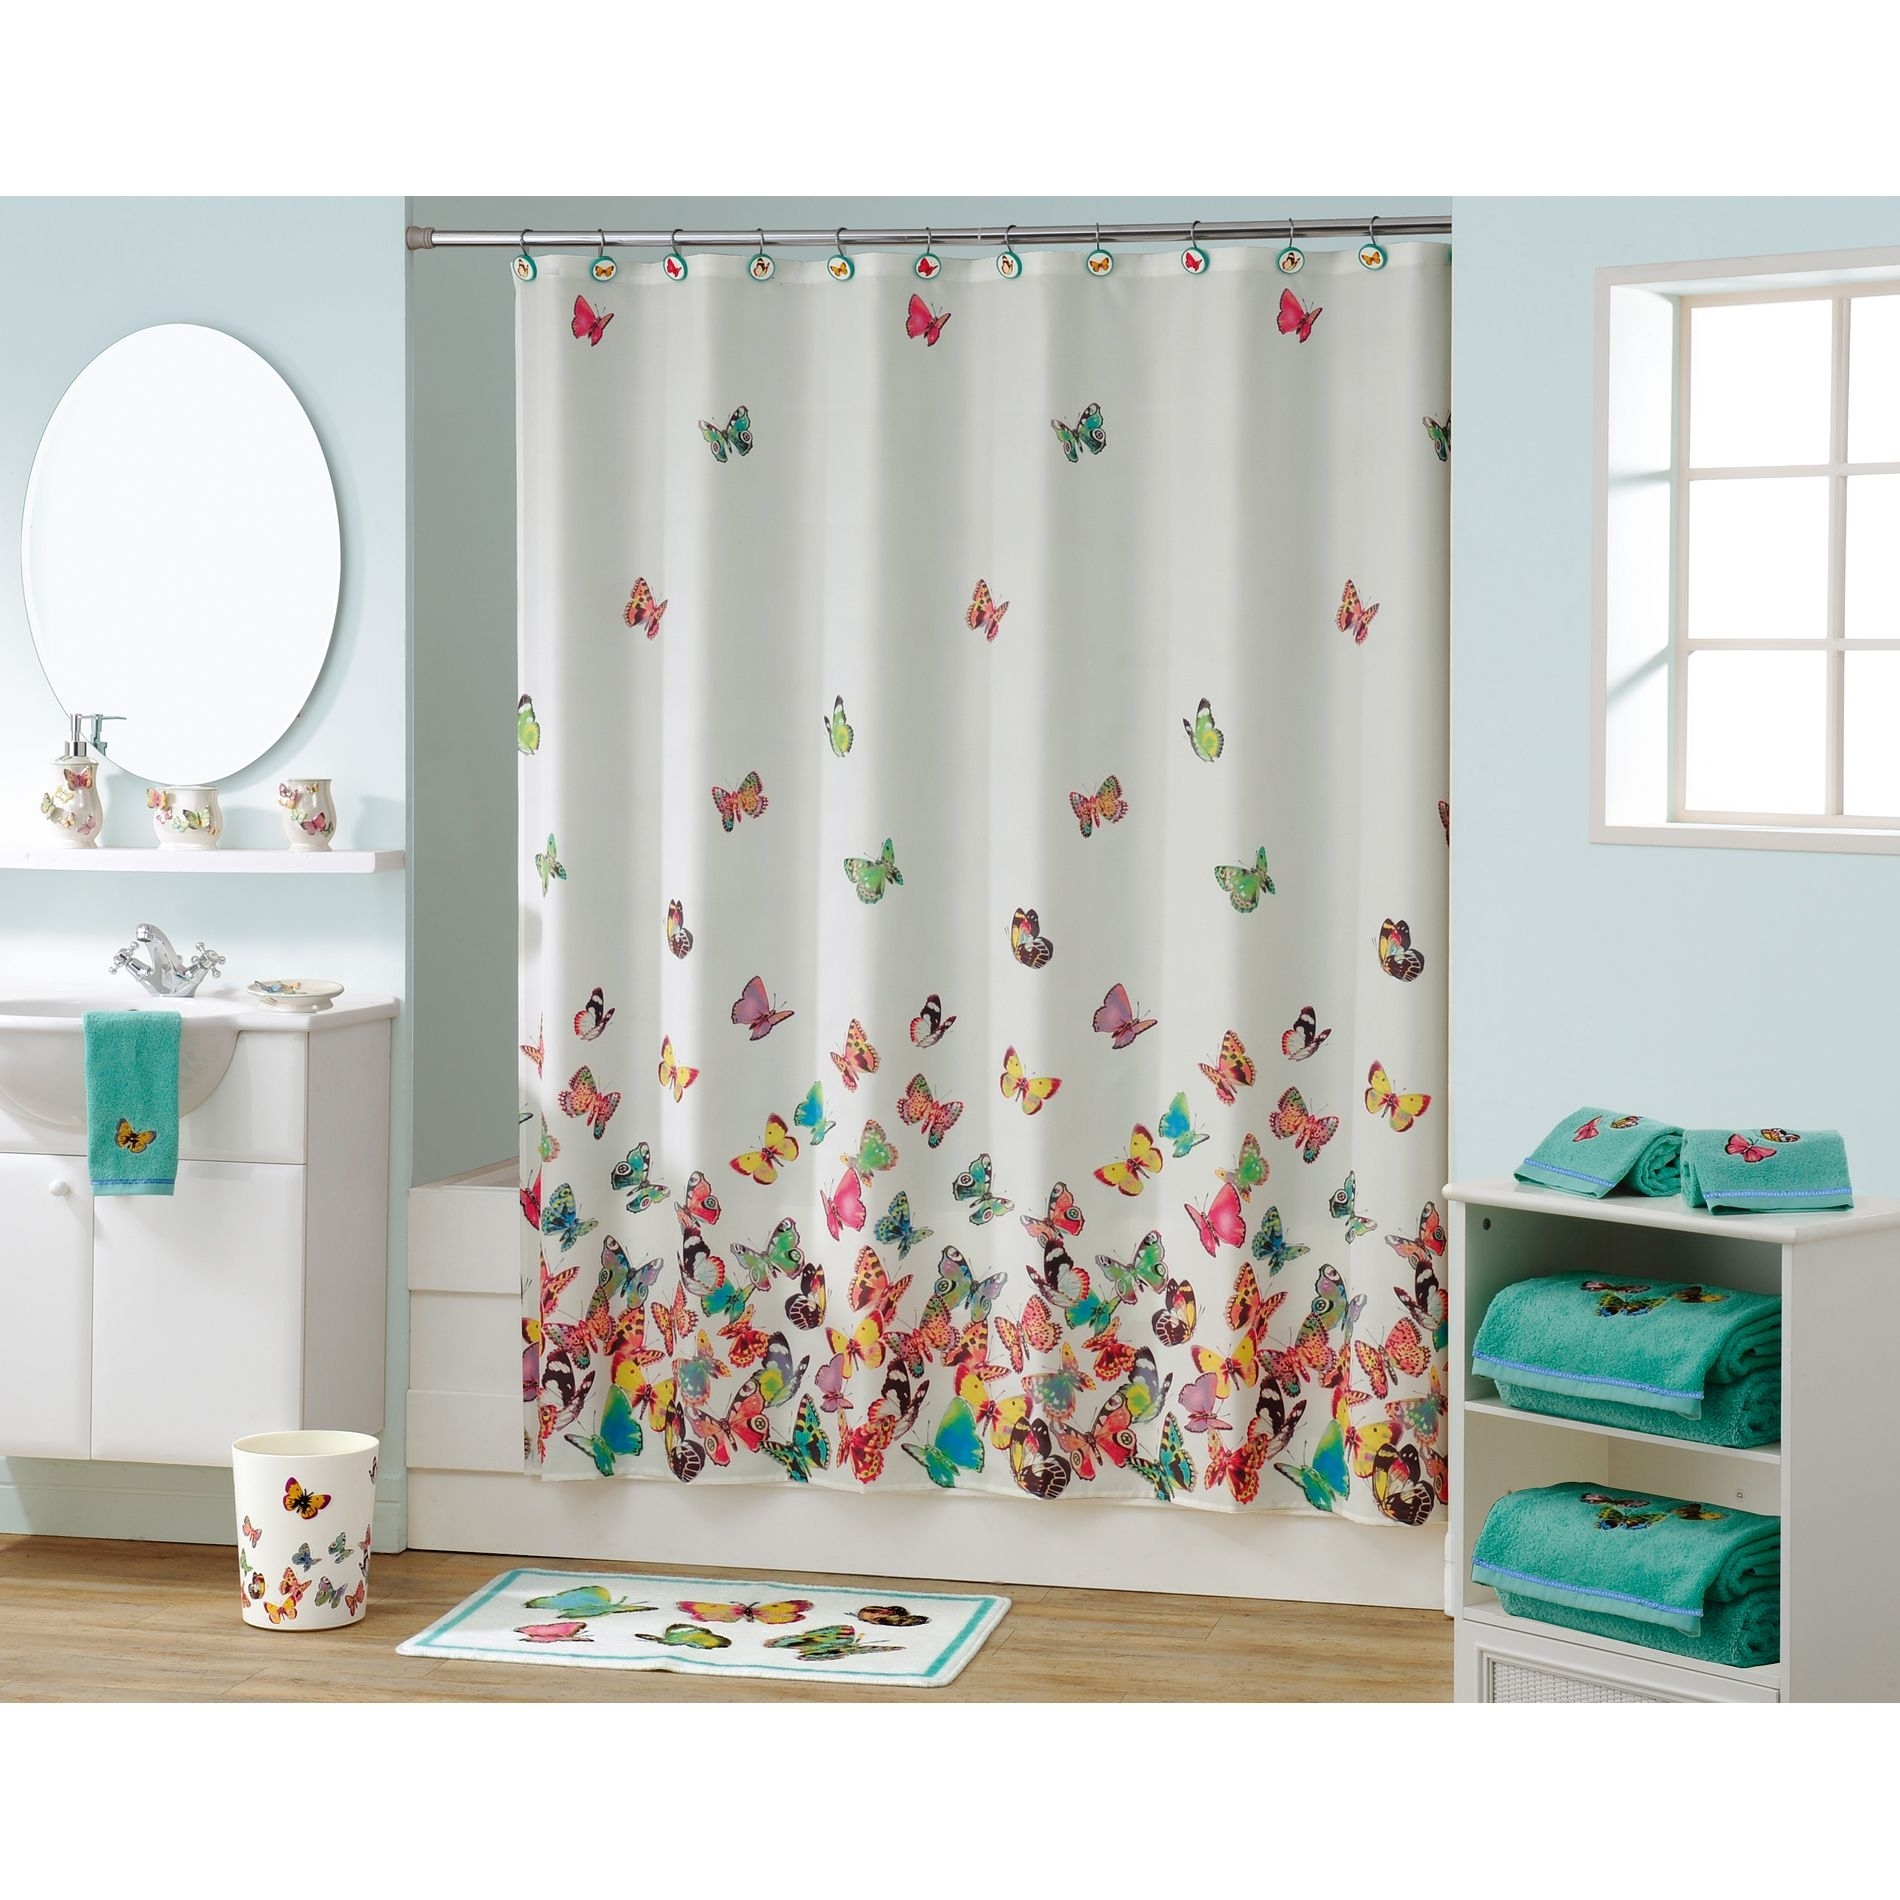 Kmart Shower Curtain Ideas On Foter Download 4,229 tropical leaves free vectors. kmart shower curtain ideas on foter